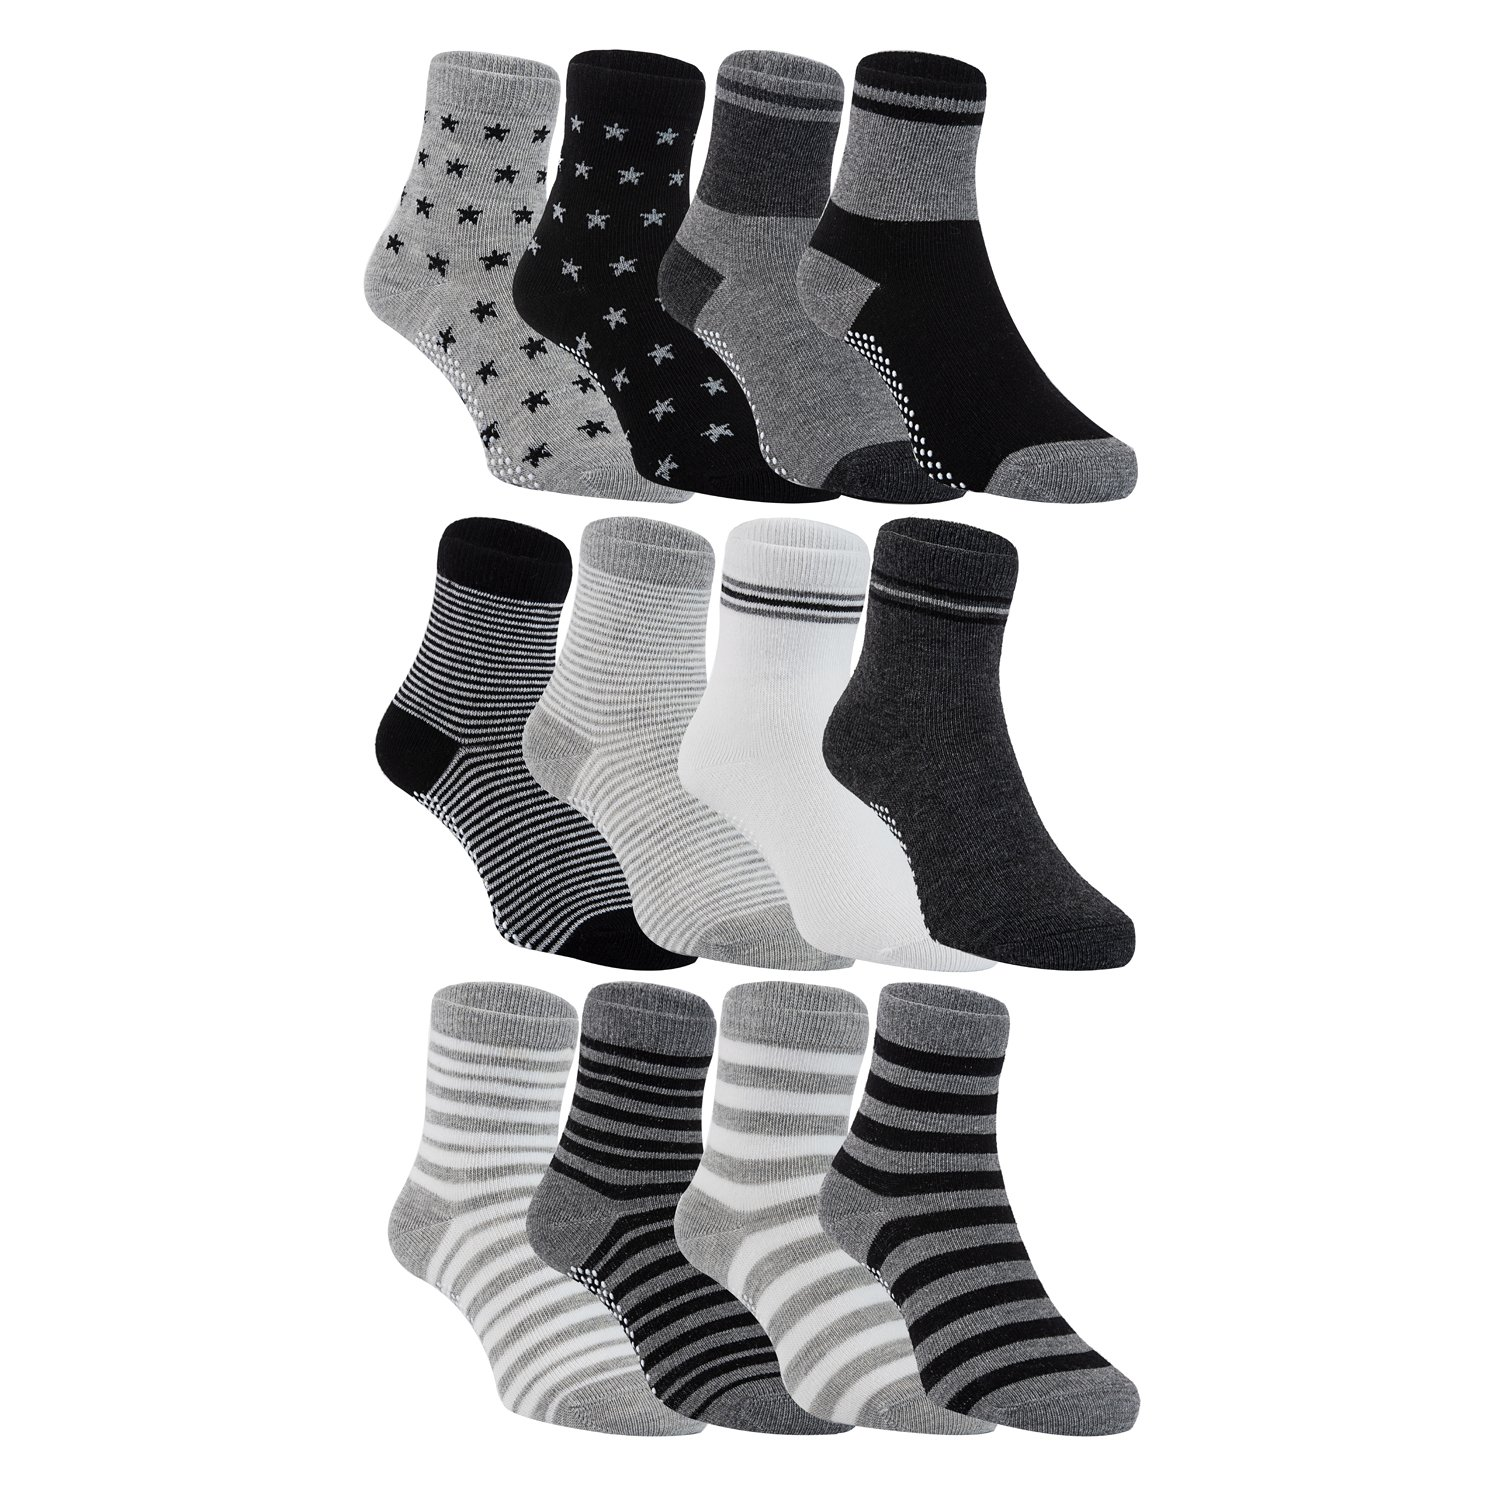 Lian LifeStyle Unisex Baby's 12 Pairs Pack Non-Skid Cotton Socks 6M-3Y Multiple Color